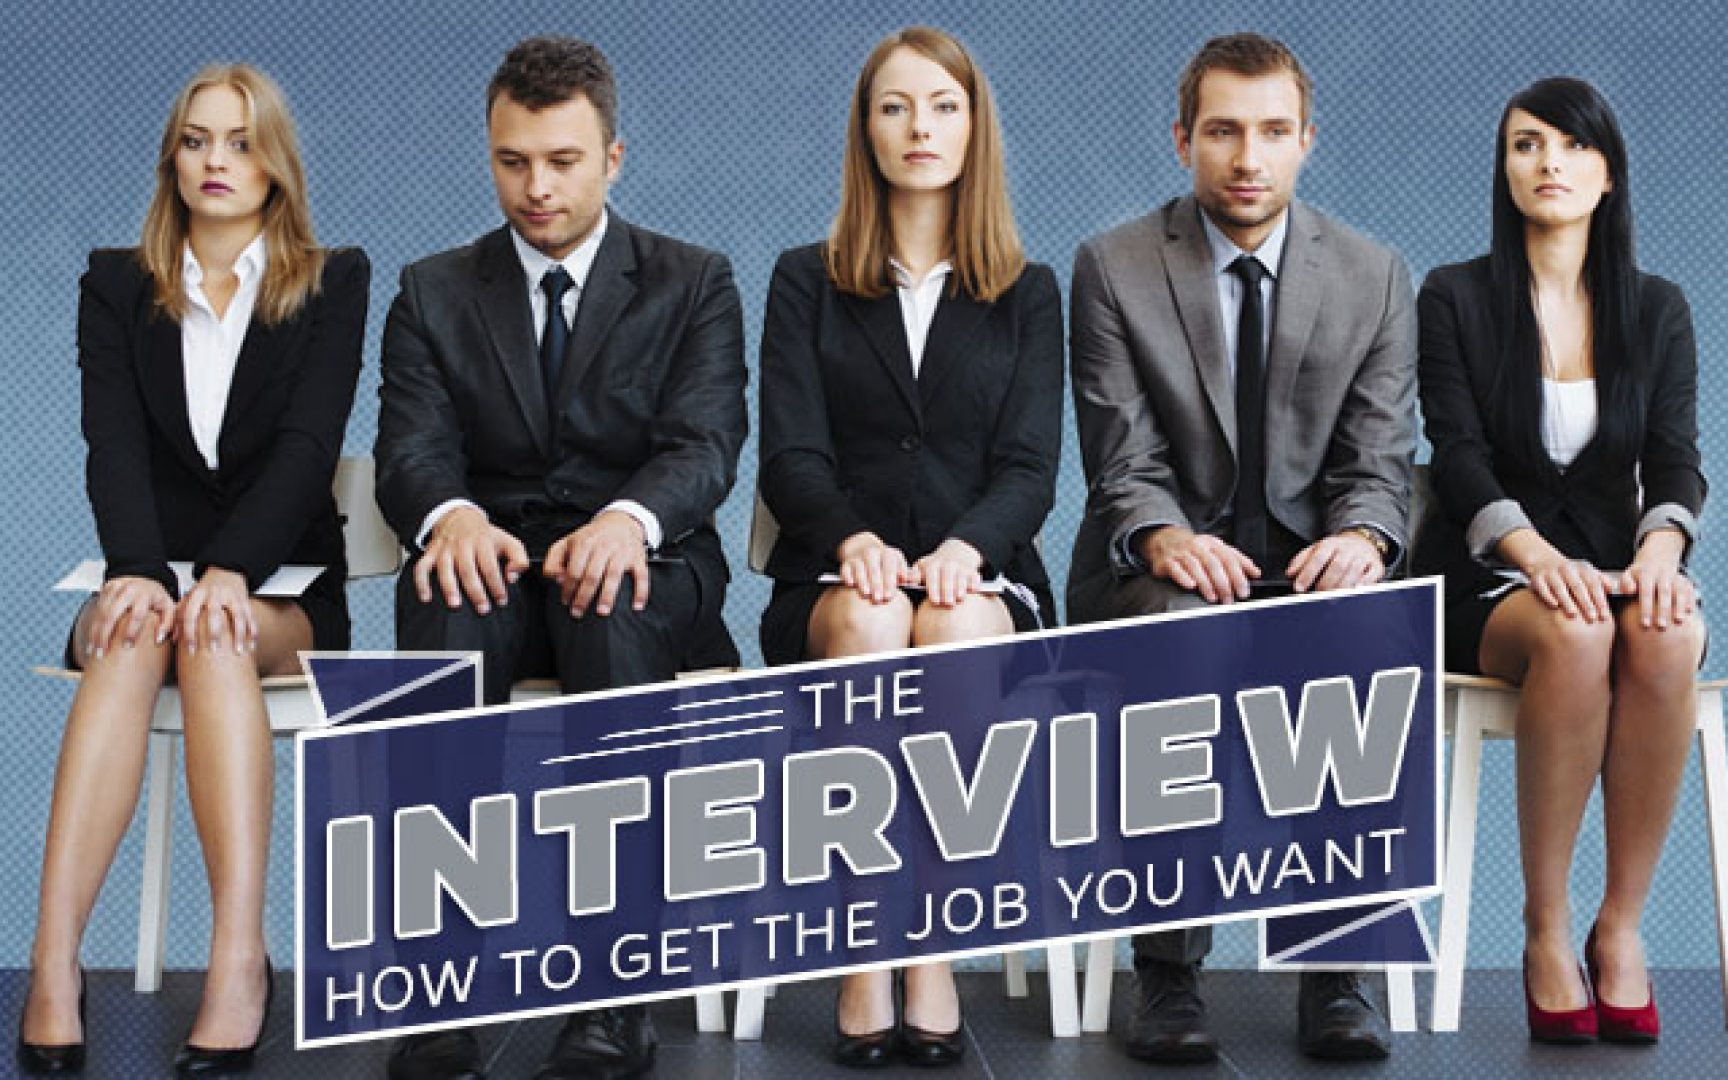 Five people in business suits sitting in a line with the text The interview How do get the job you want